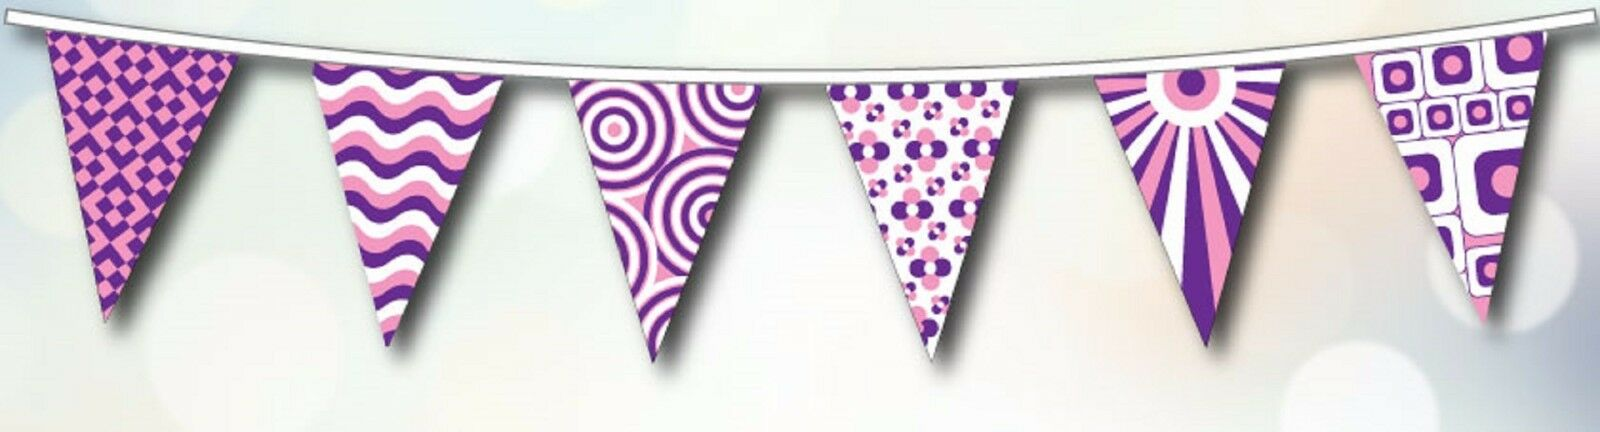 Hippy Festival Polyester Bunting - 20m with 48 Flags - lila and Weiß